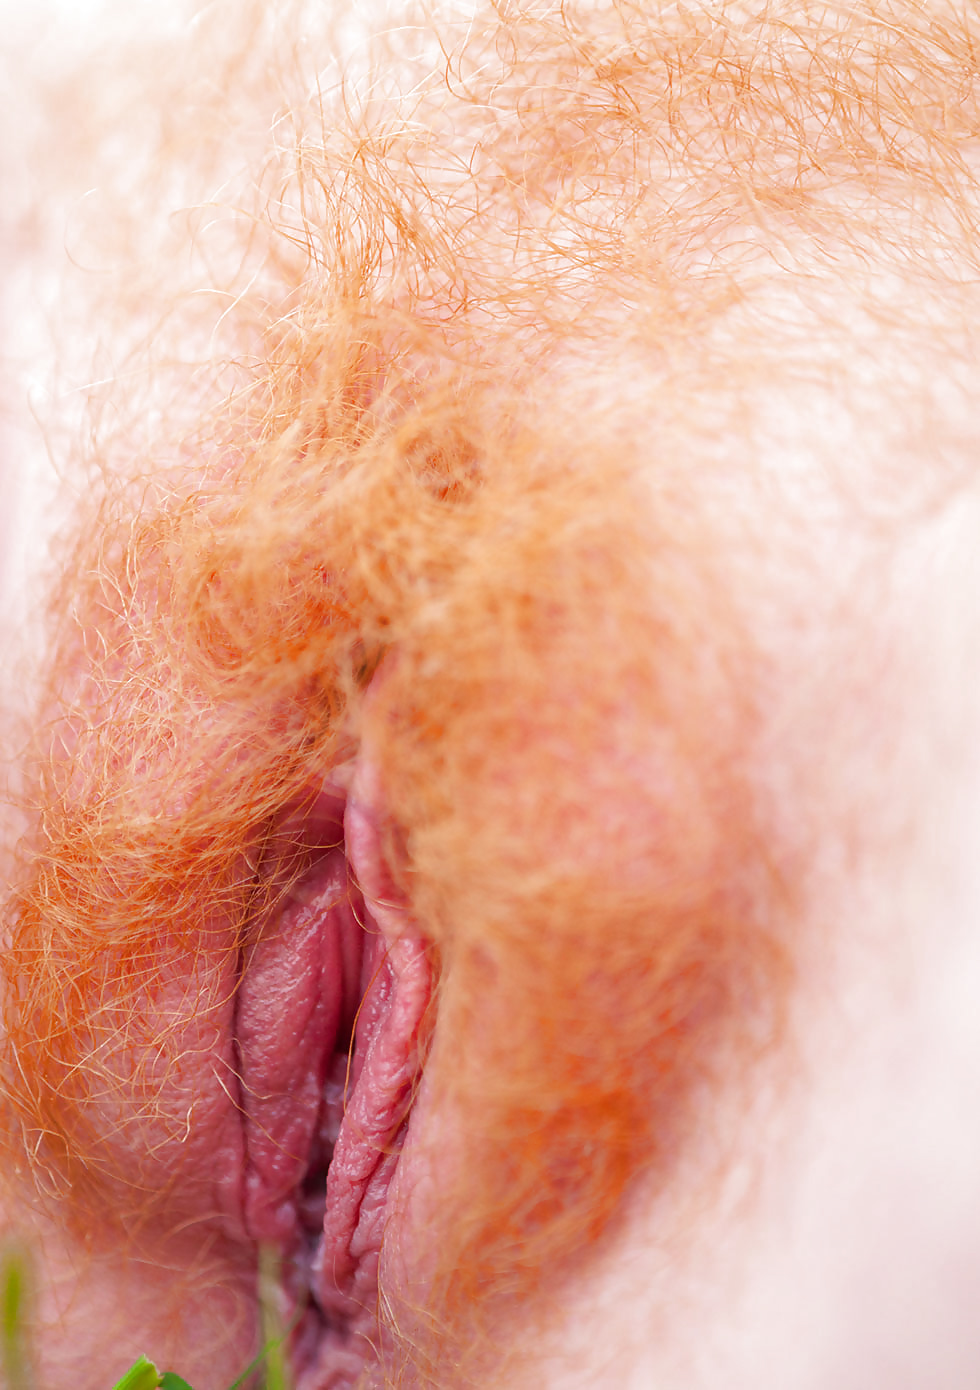 Red hair up close pussy